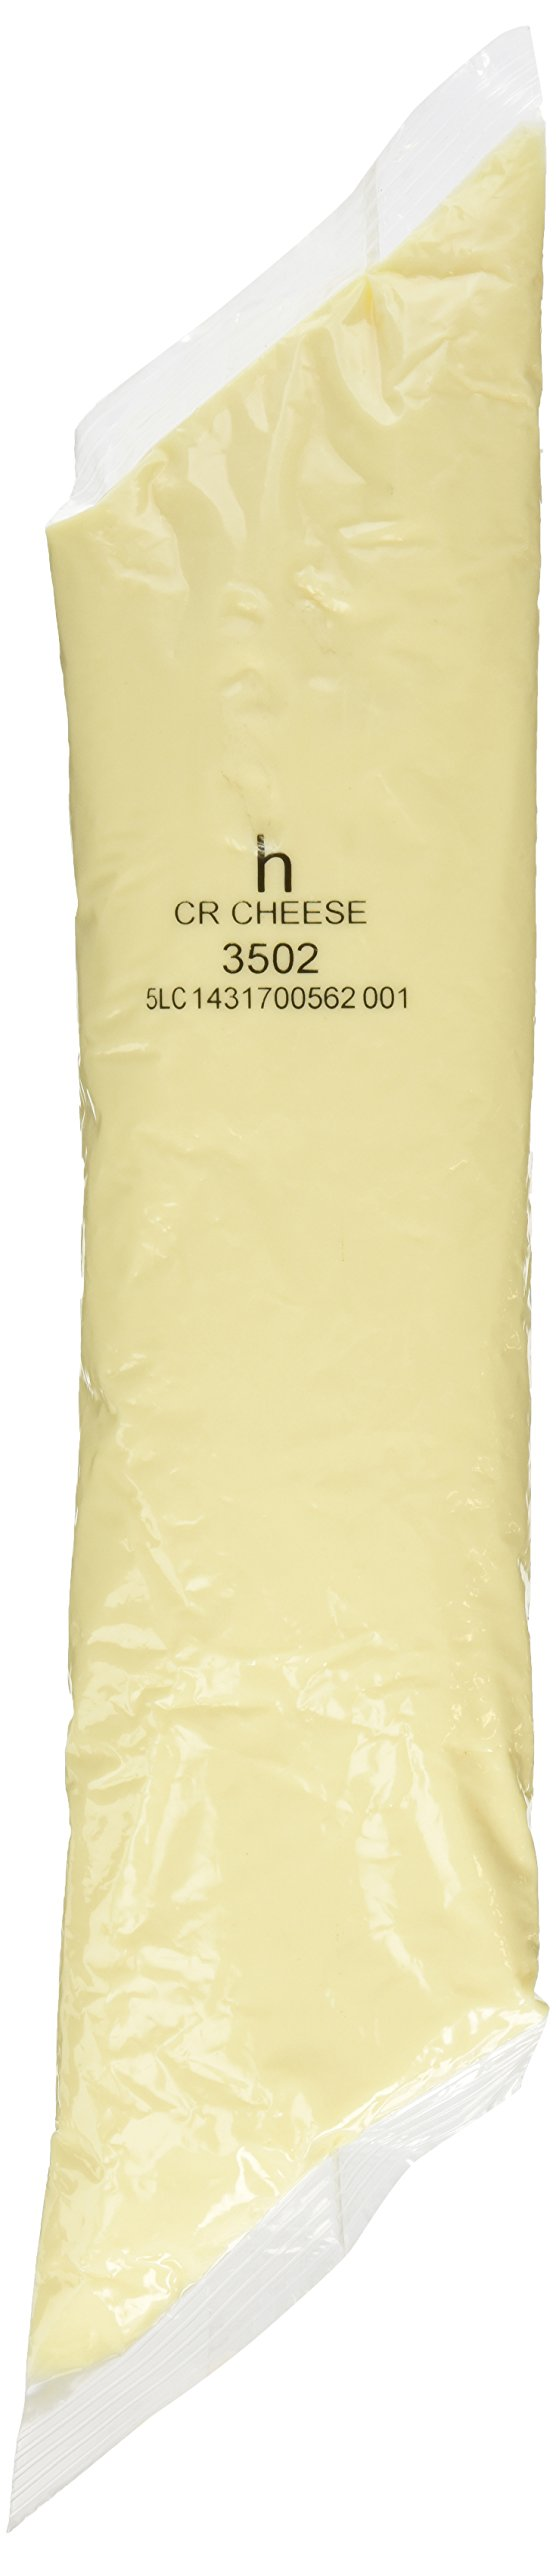 Henry & Henry Cream Cheese Pastry and Cake Filling, Redi Pak, 2 Pound by Henry